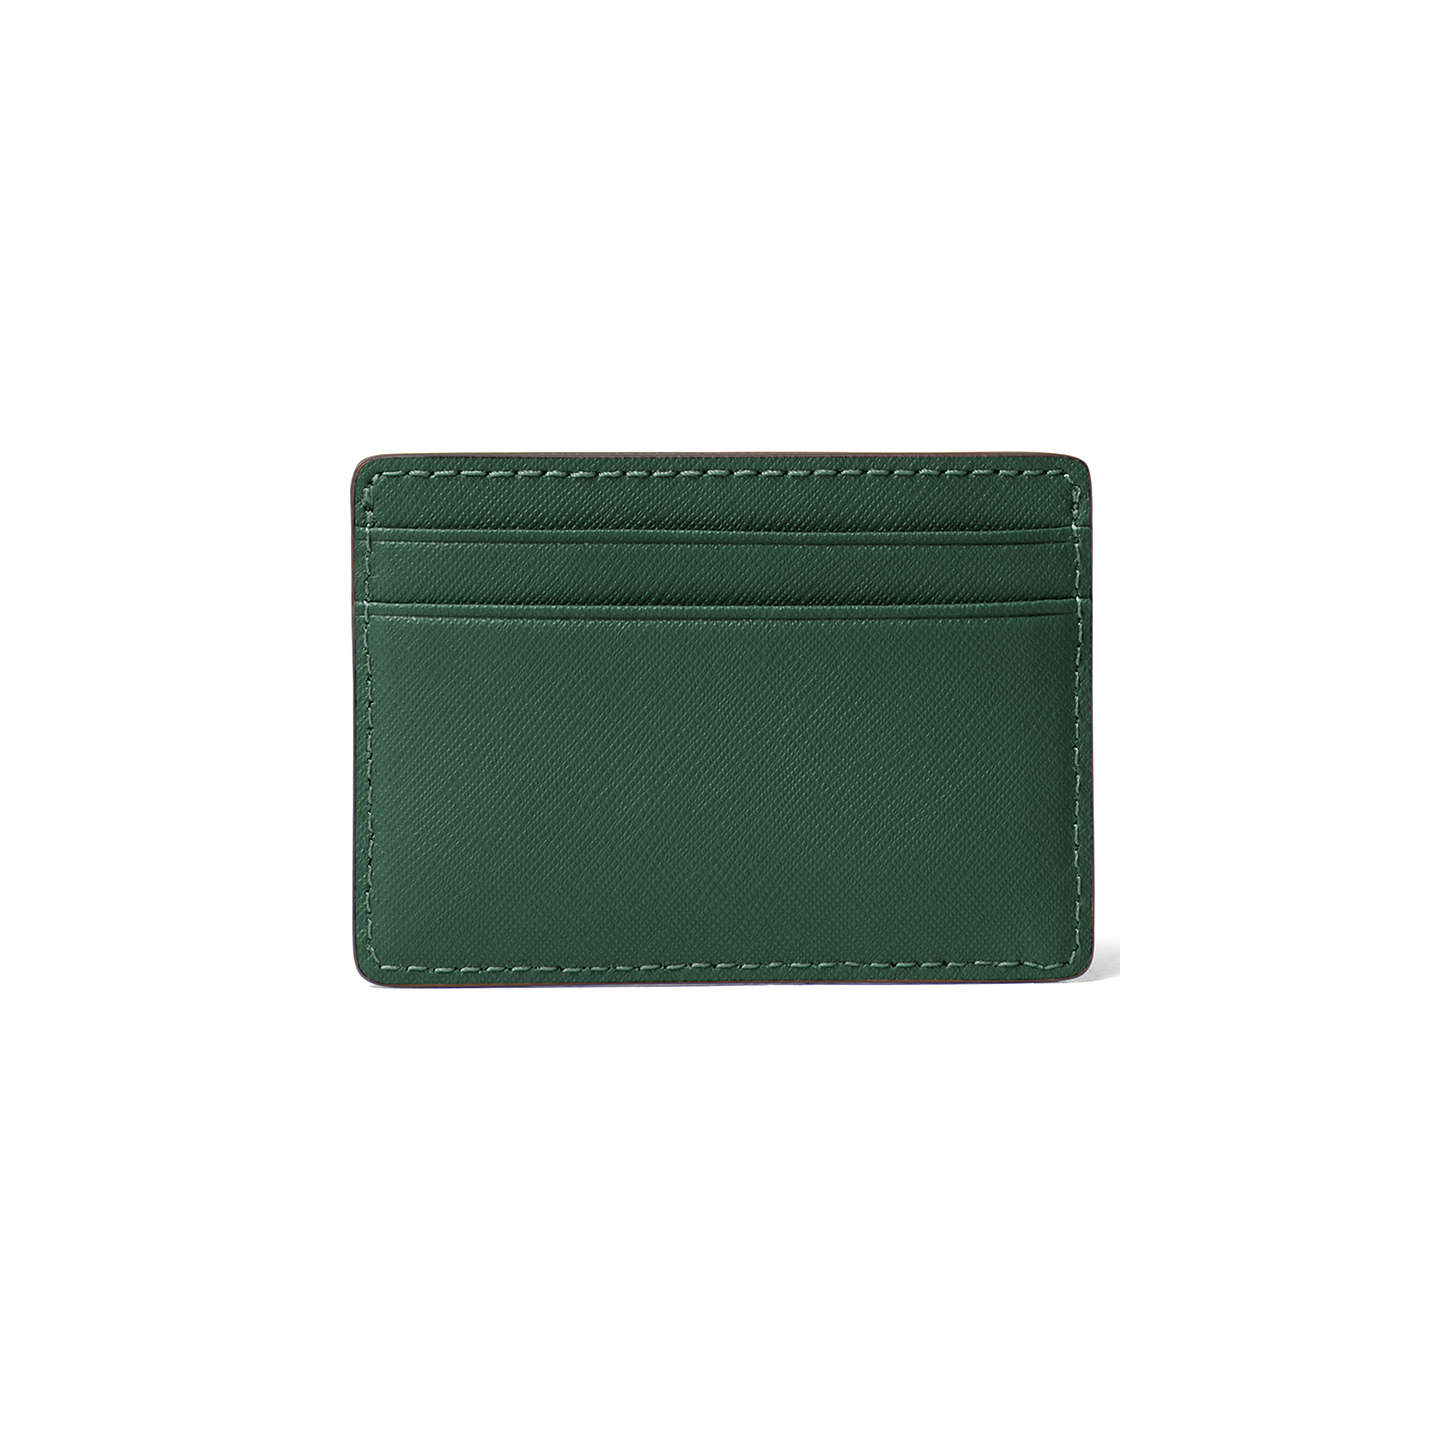 BuyMICHAEL Michael Kors Jet Set Travel Leather Card Holder, Moss Online at johnlewis.com